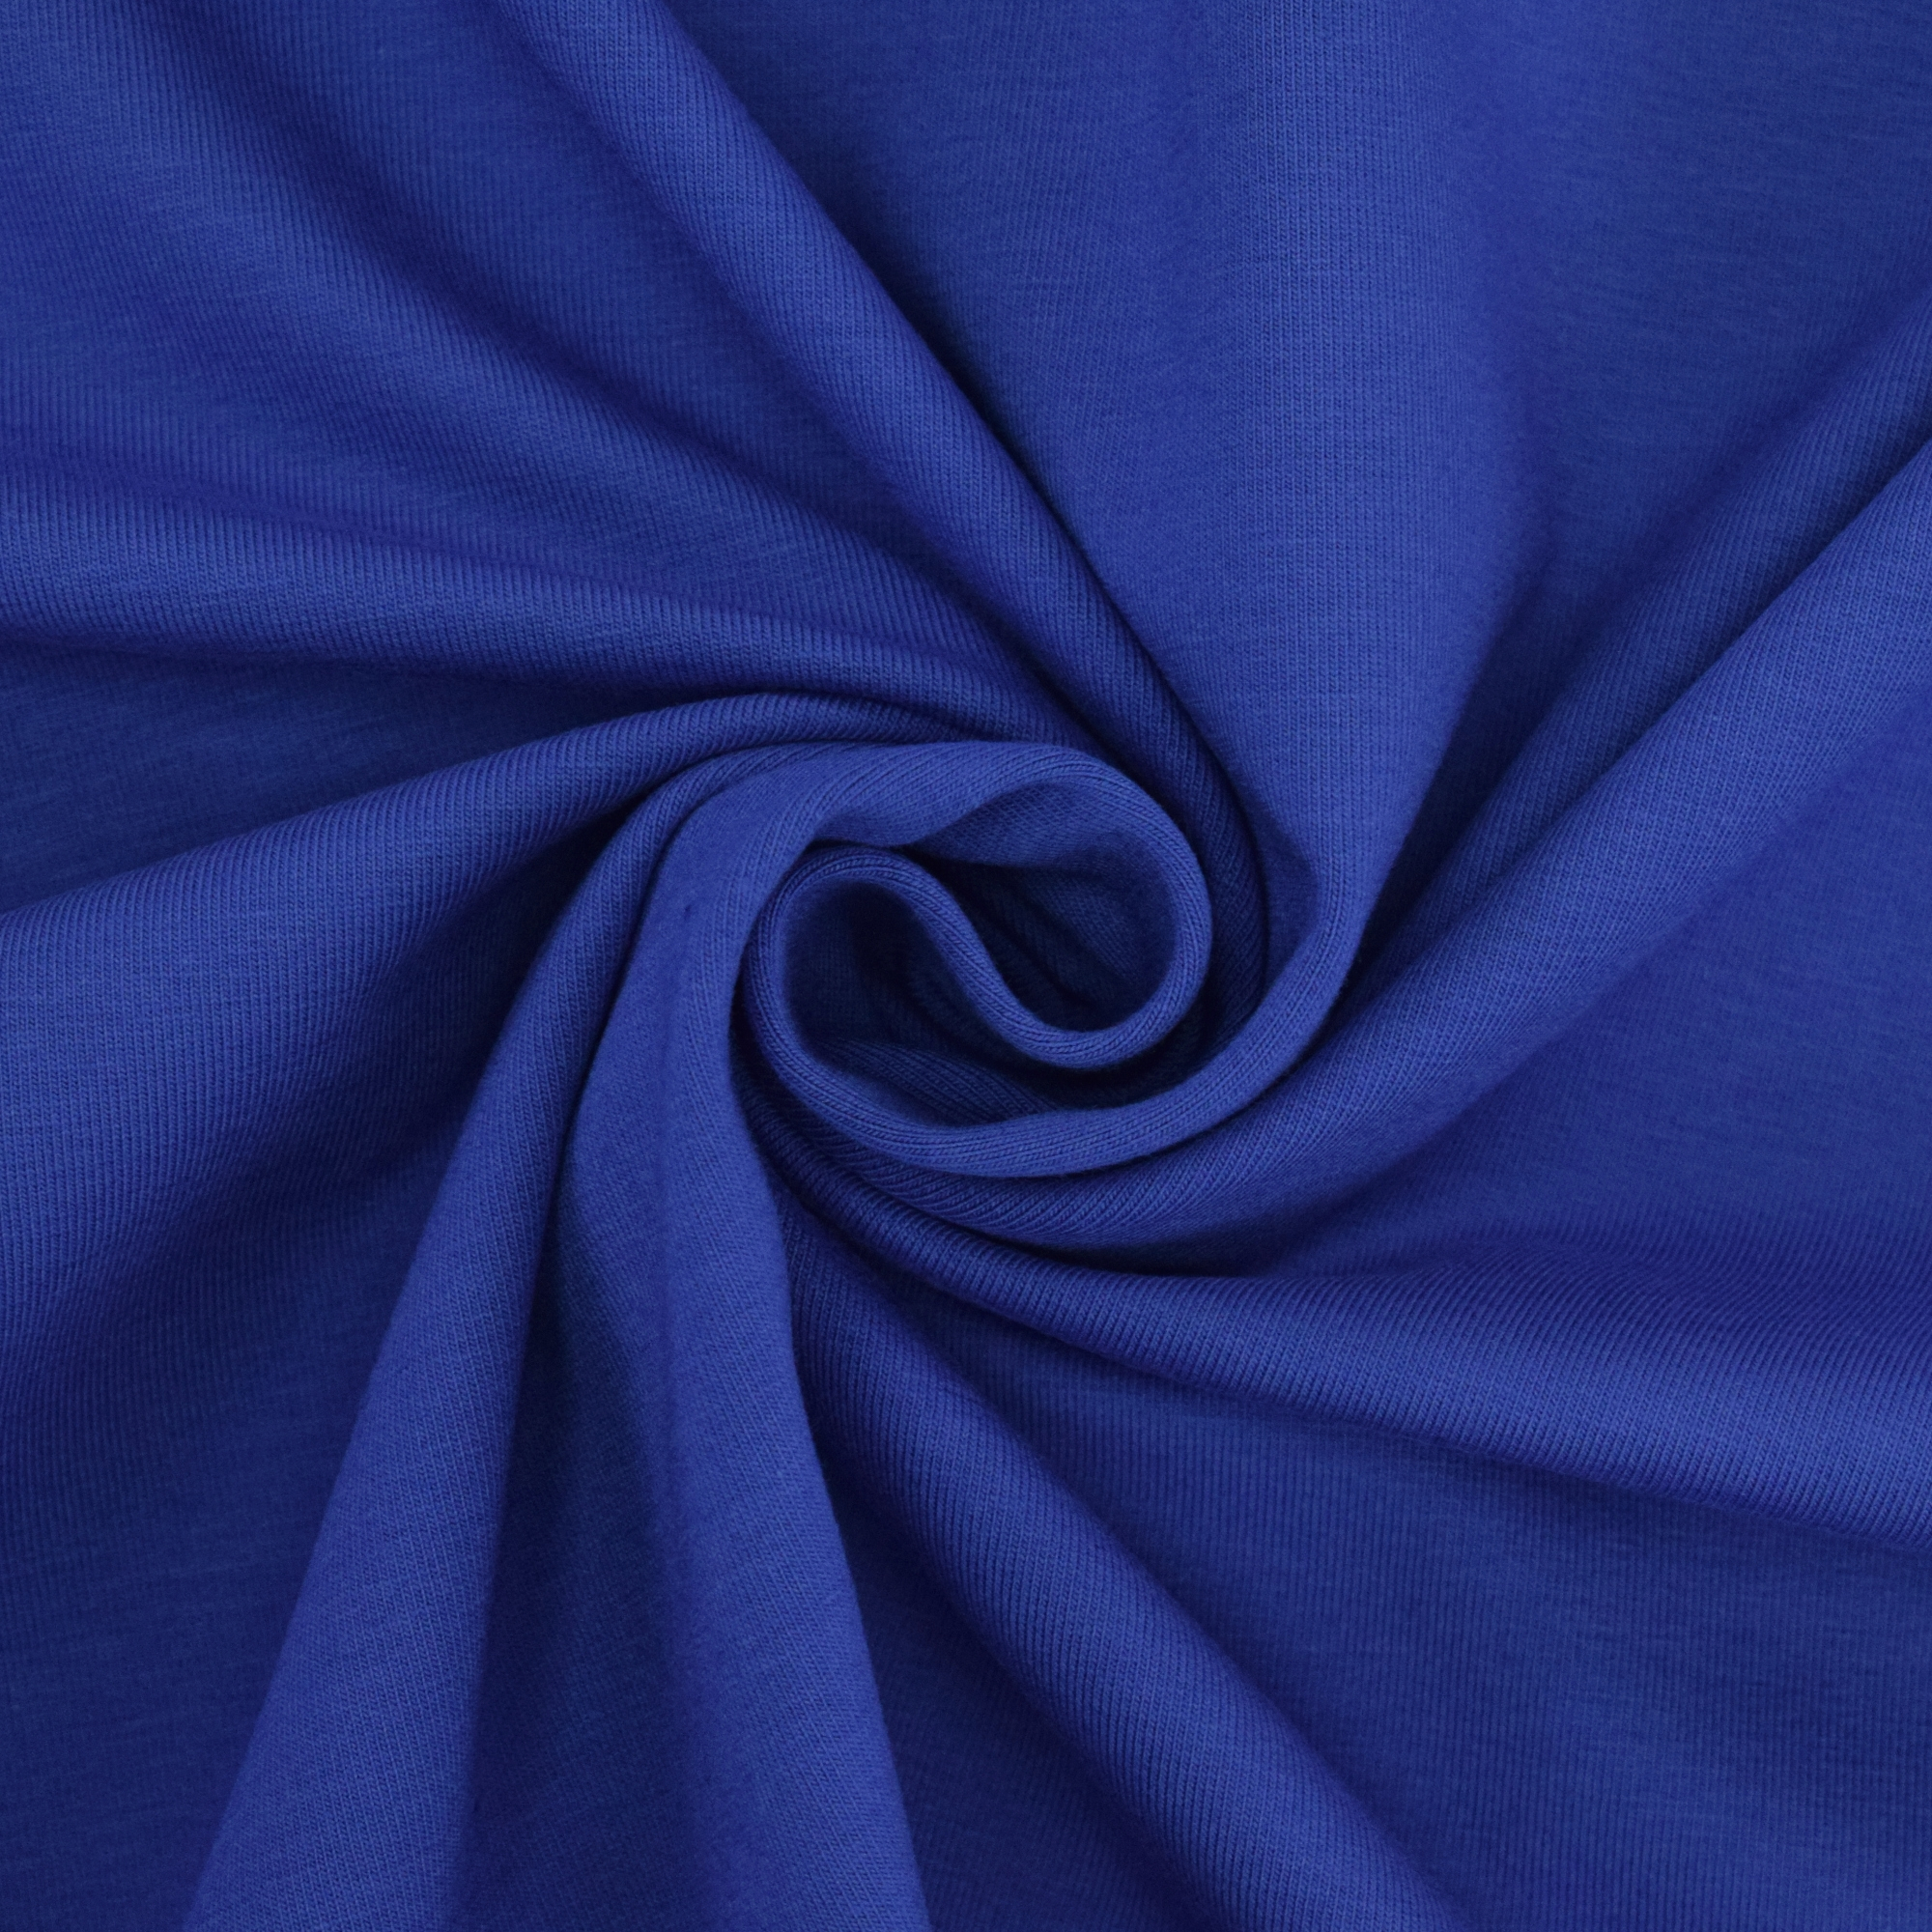 Cotton jersey plain, royal blue | 455.421-7205 | blau